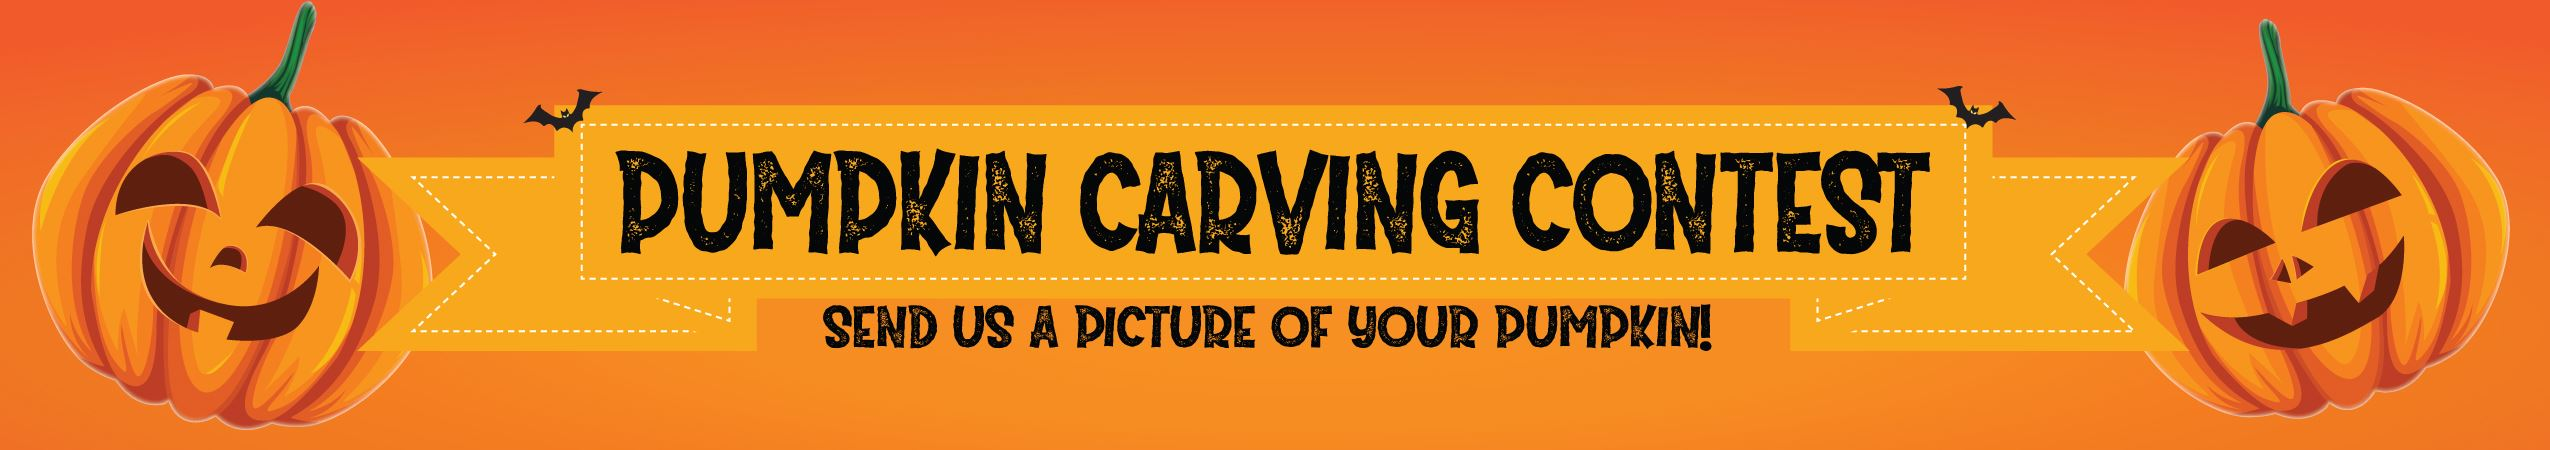 Pumpkin-Carving-Contest-Web-Banner